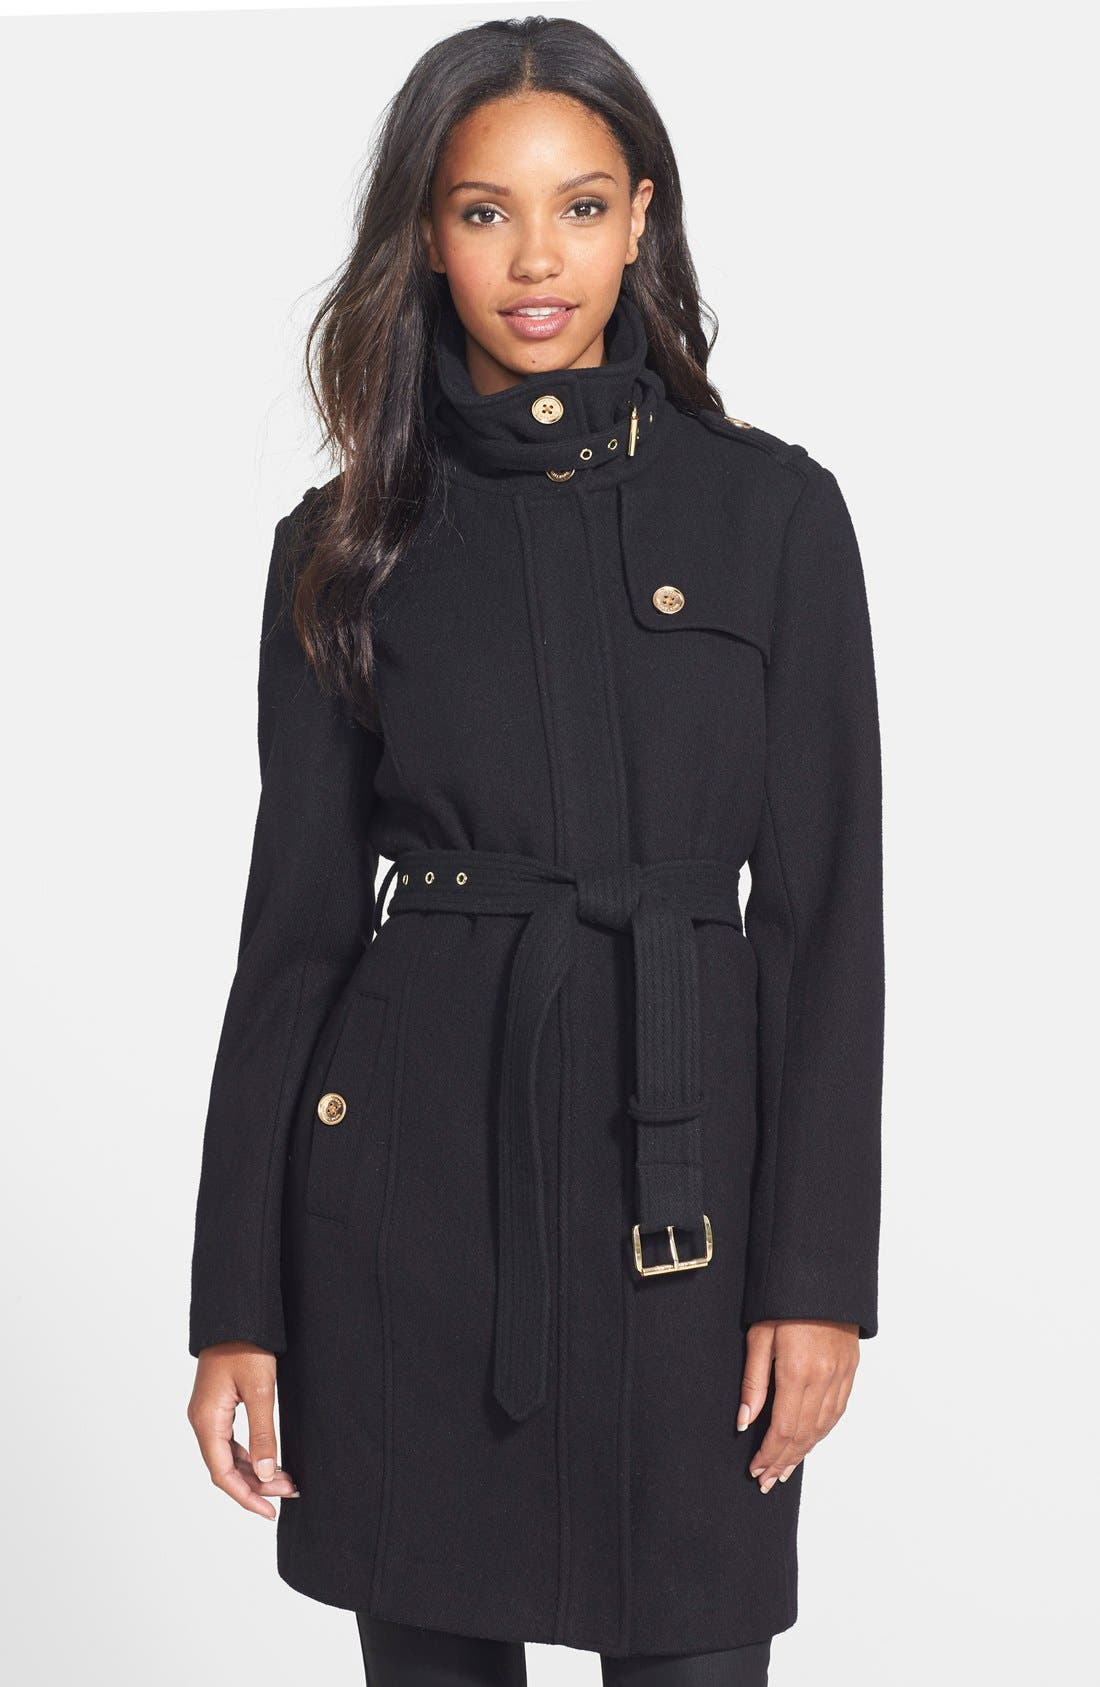 Stand Collar Wool Blend Trench Coat,                             Main thumbnail 1, color,                             001